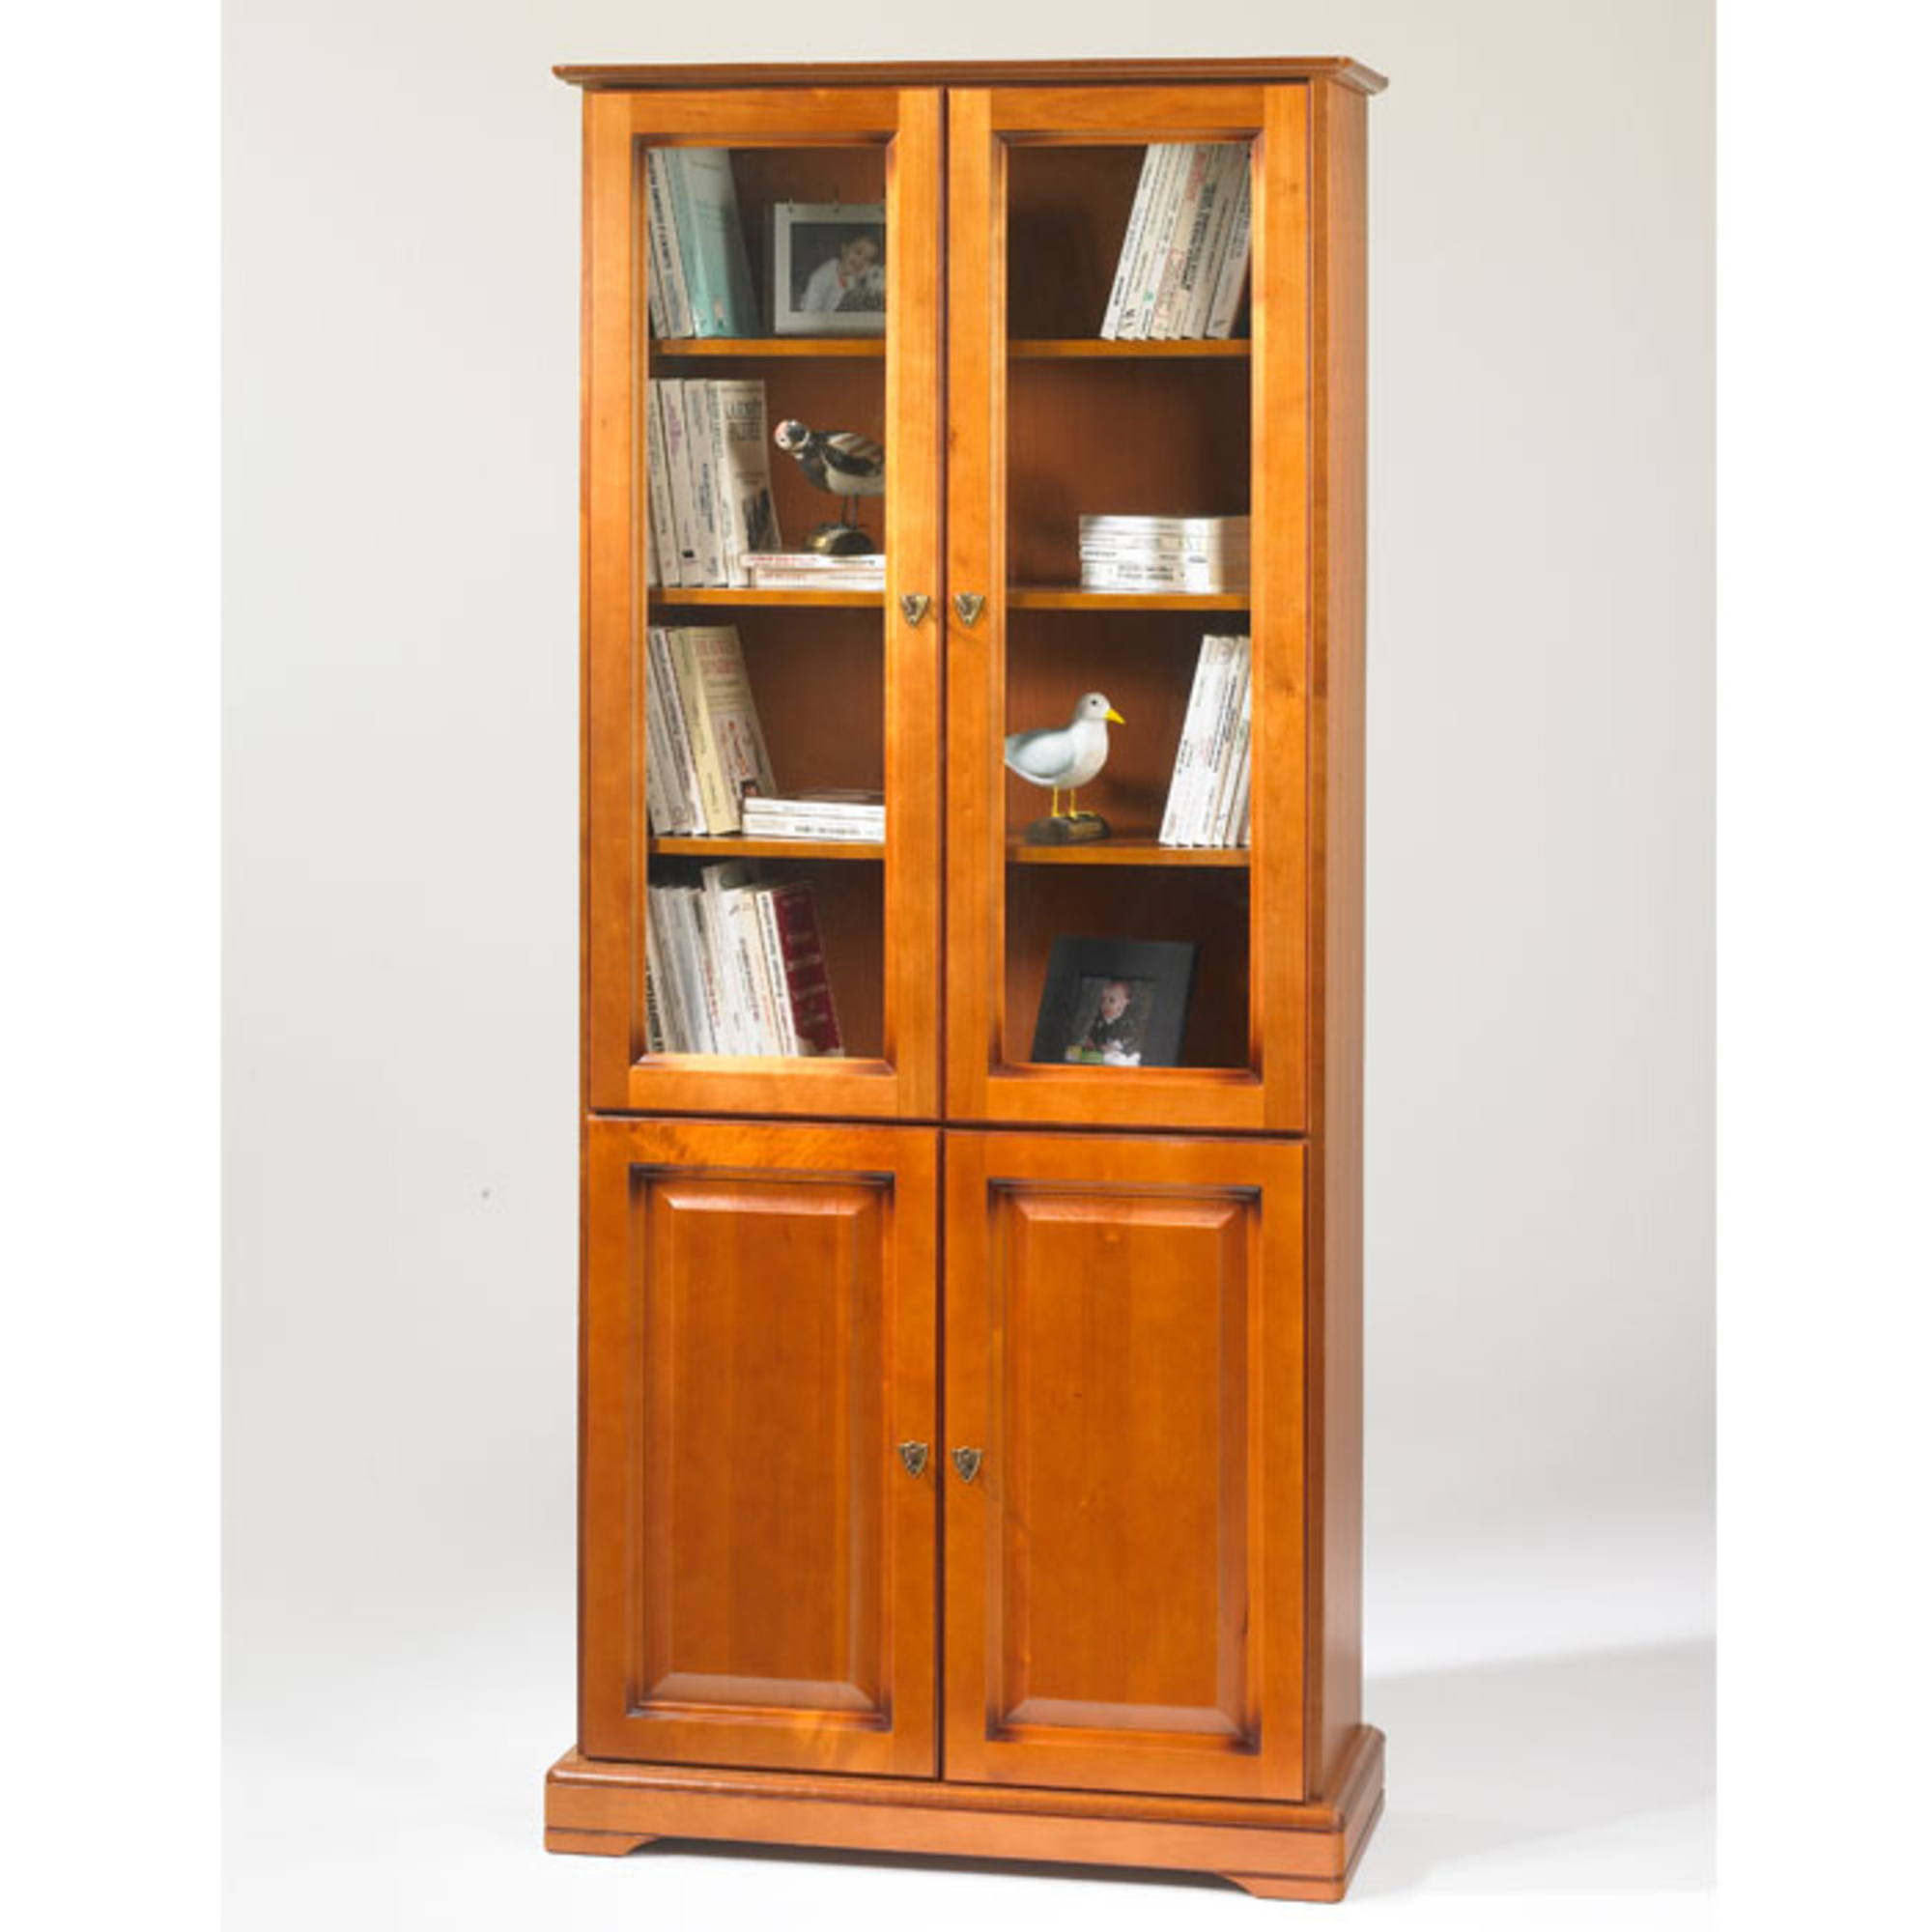 biblioth que louis philippe 2 portes vitr es pictures to pin on pinterest. Black Bedroom Furniture Sets. Home Design Ideas